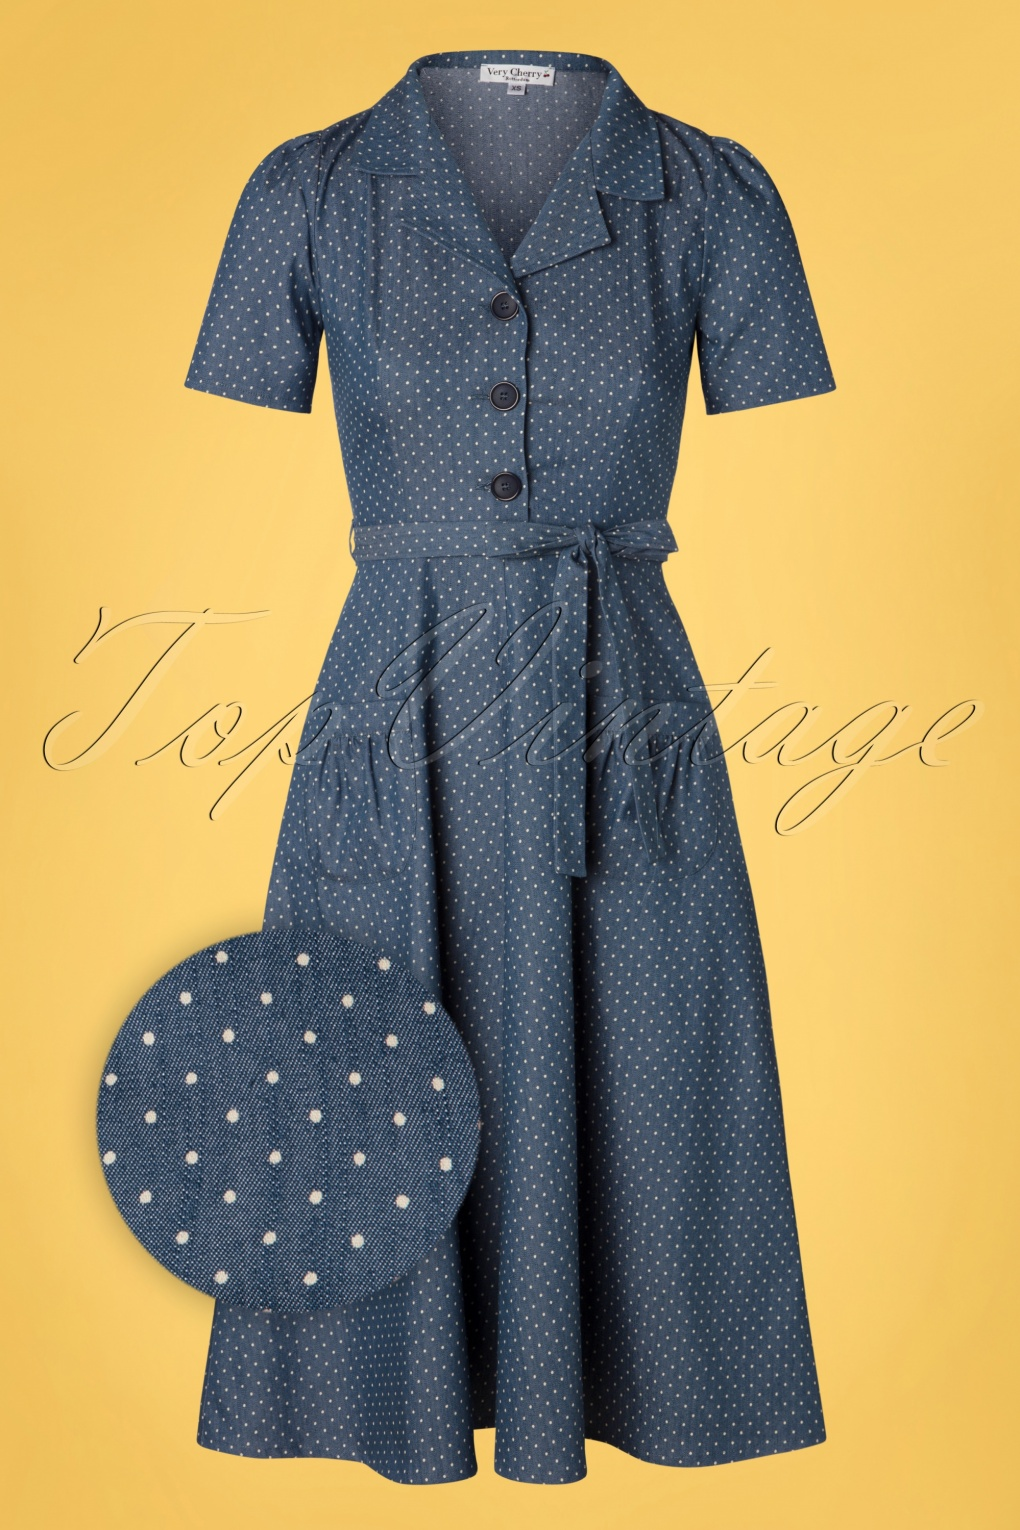 1940s Dresses | 40s Dress, Swing Dress 40s Revers Midi Dots Dress in Light Denim Blue £119.97 AT vintagedancer.com